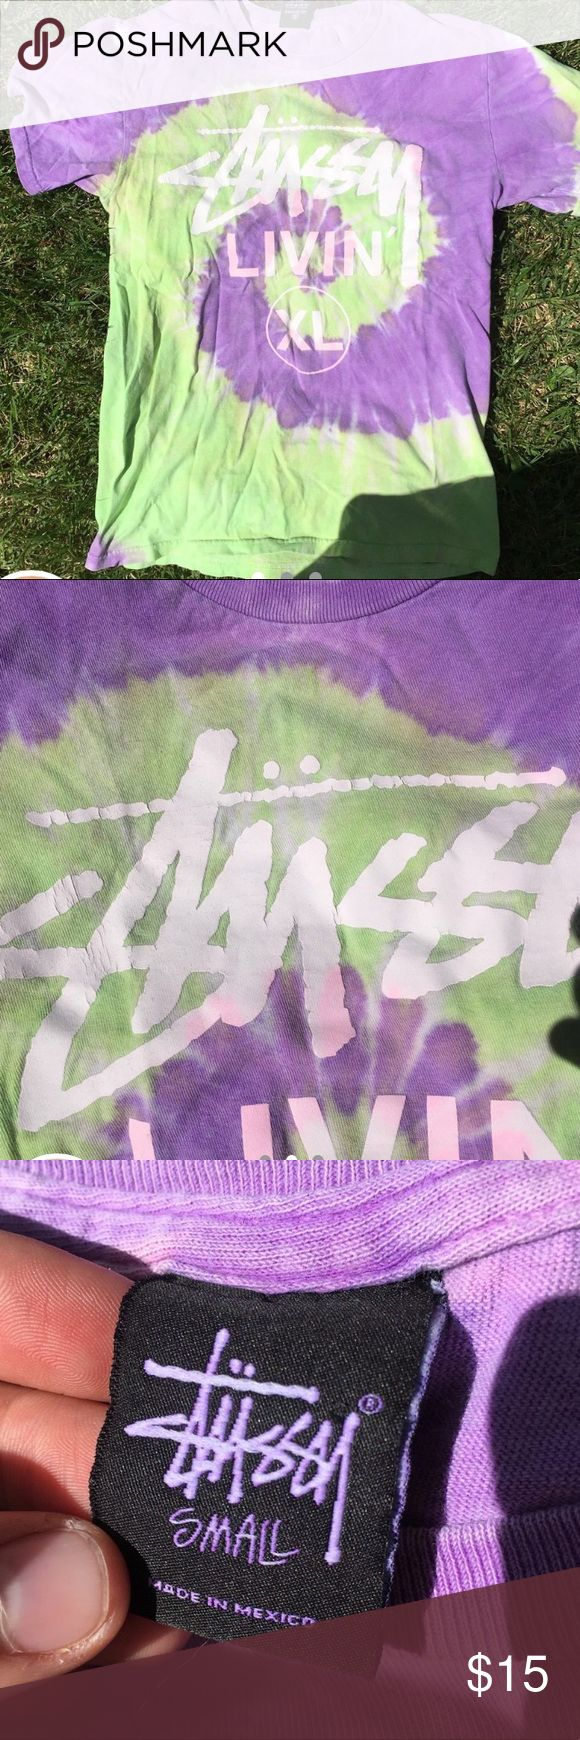 Stussy tie dye Tie dye Stussy shirt. Great condition besides cracking from regular wear Stussy Shirts Tees - Short Sleeve